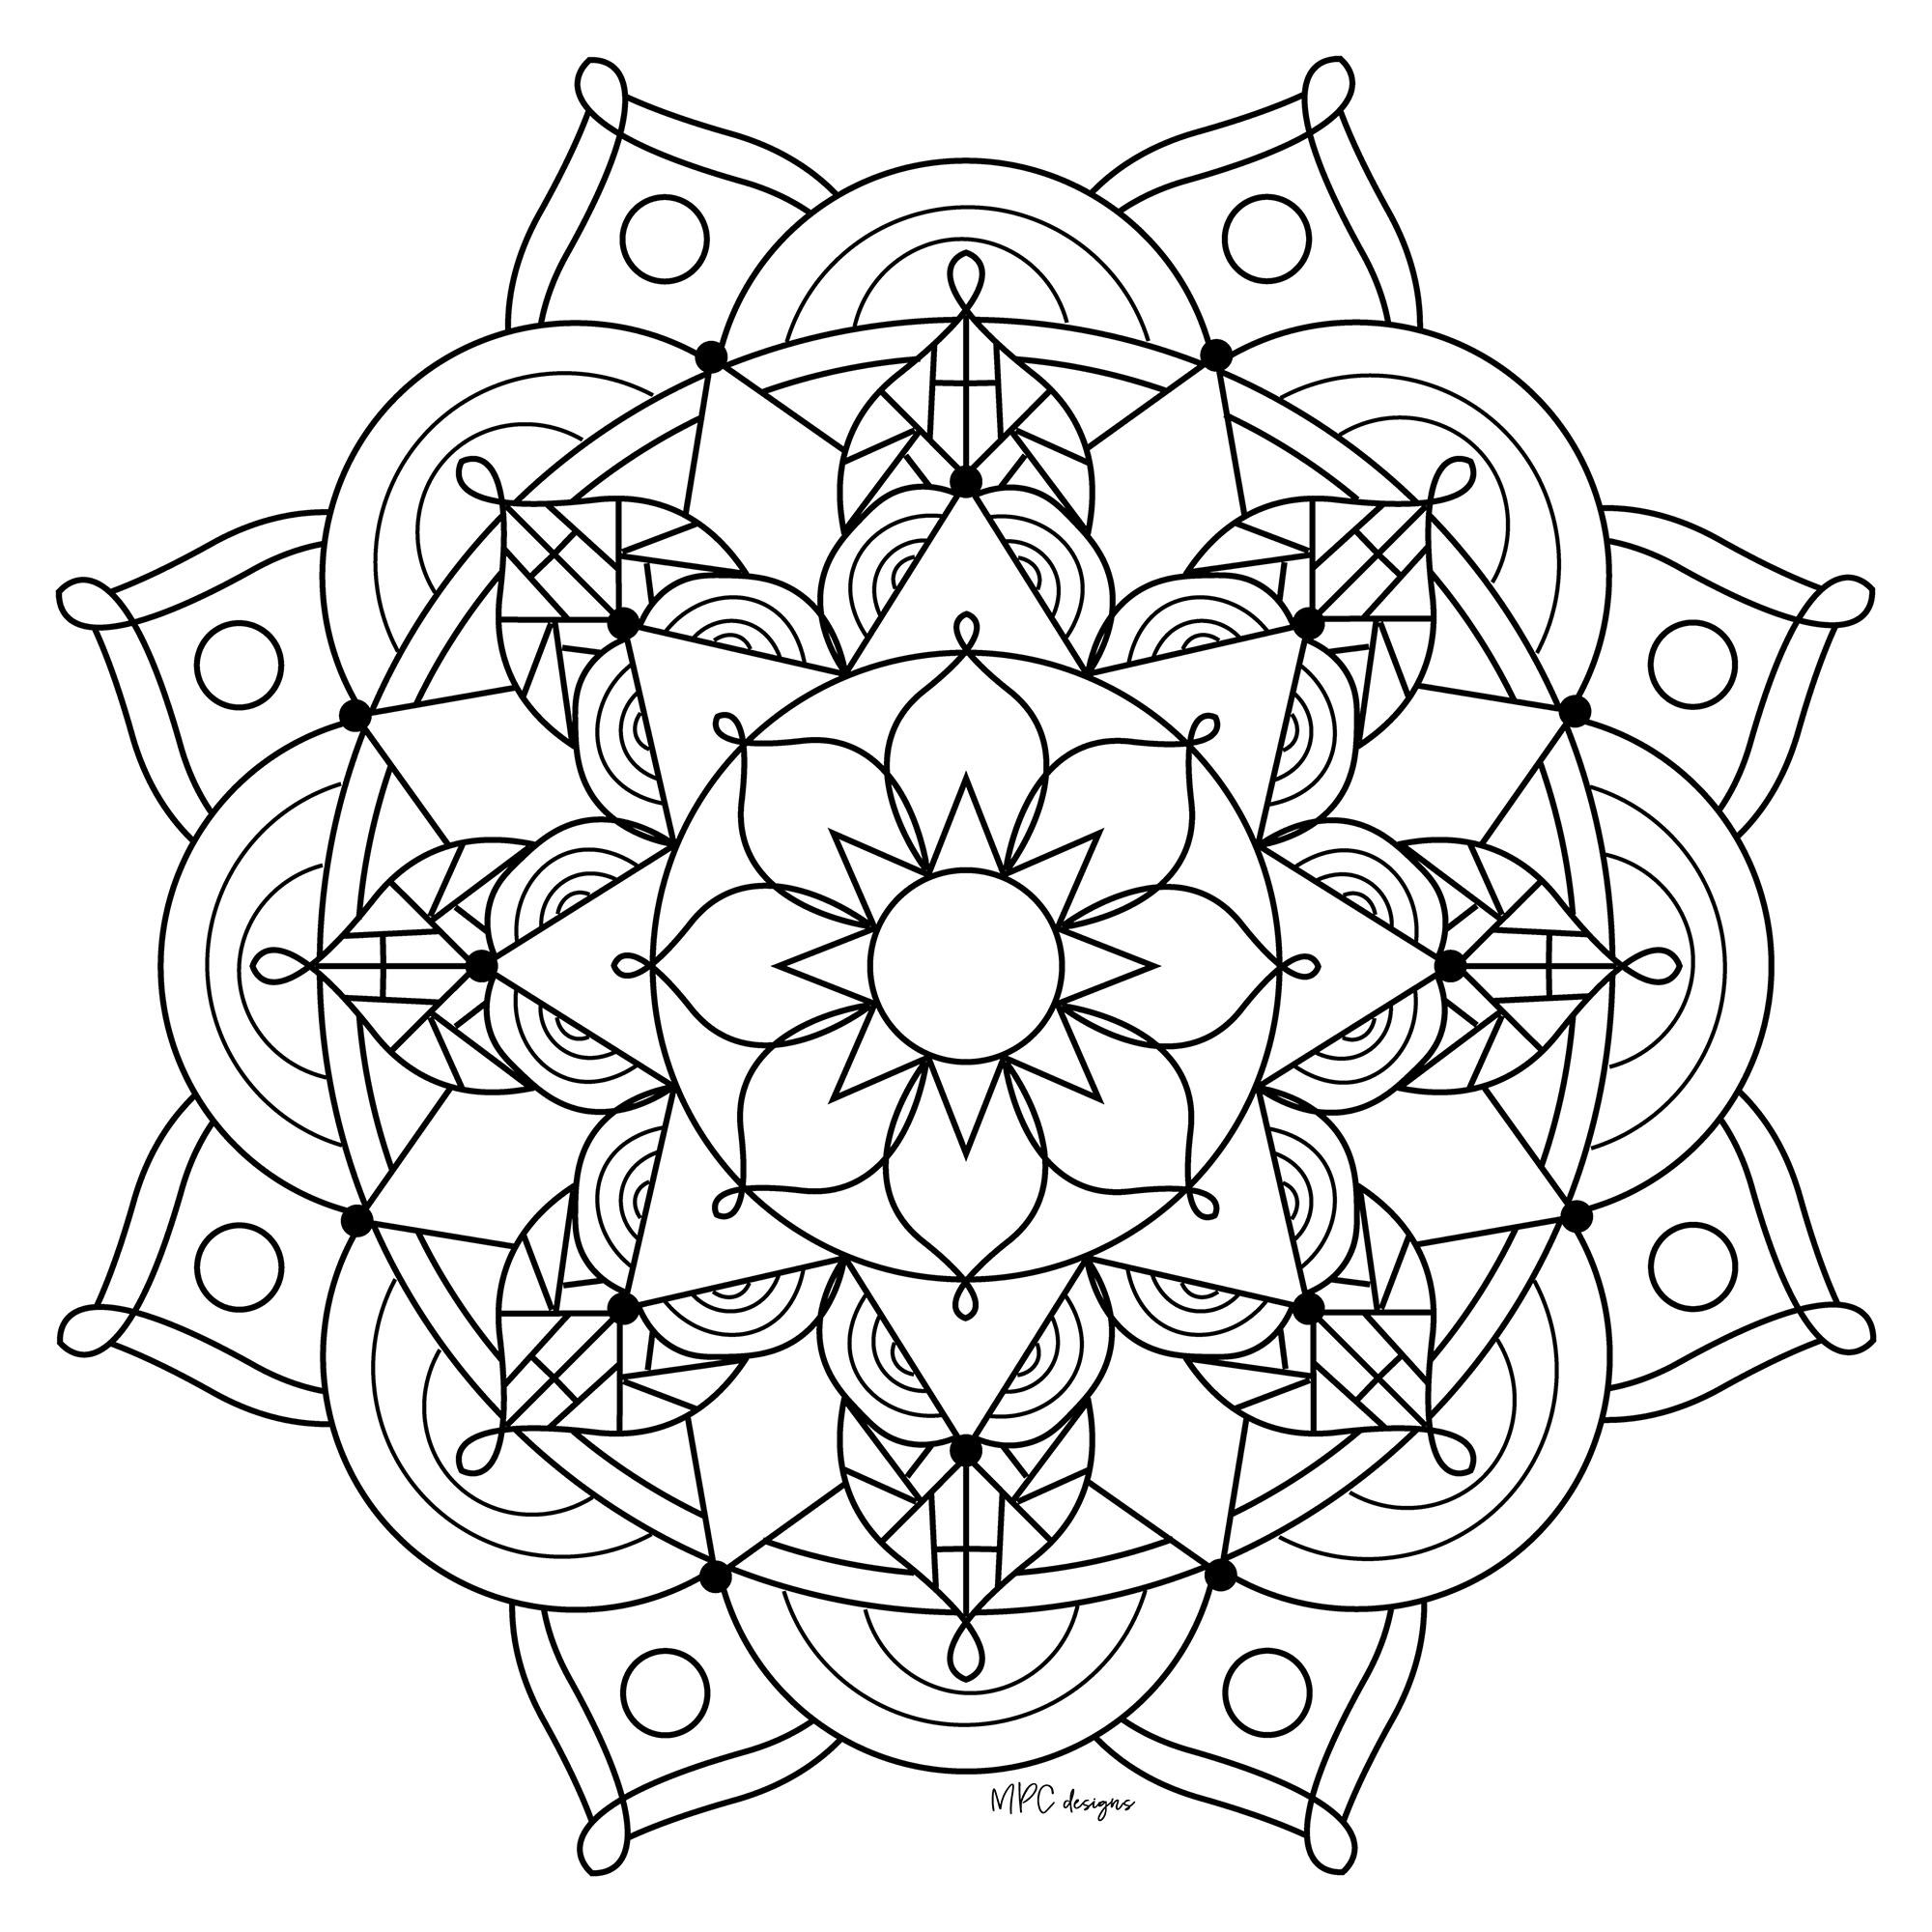 mandala colouring pages for kids simple mandala 19 mandalas coloring pages for kids to colouring mandala for pages kids